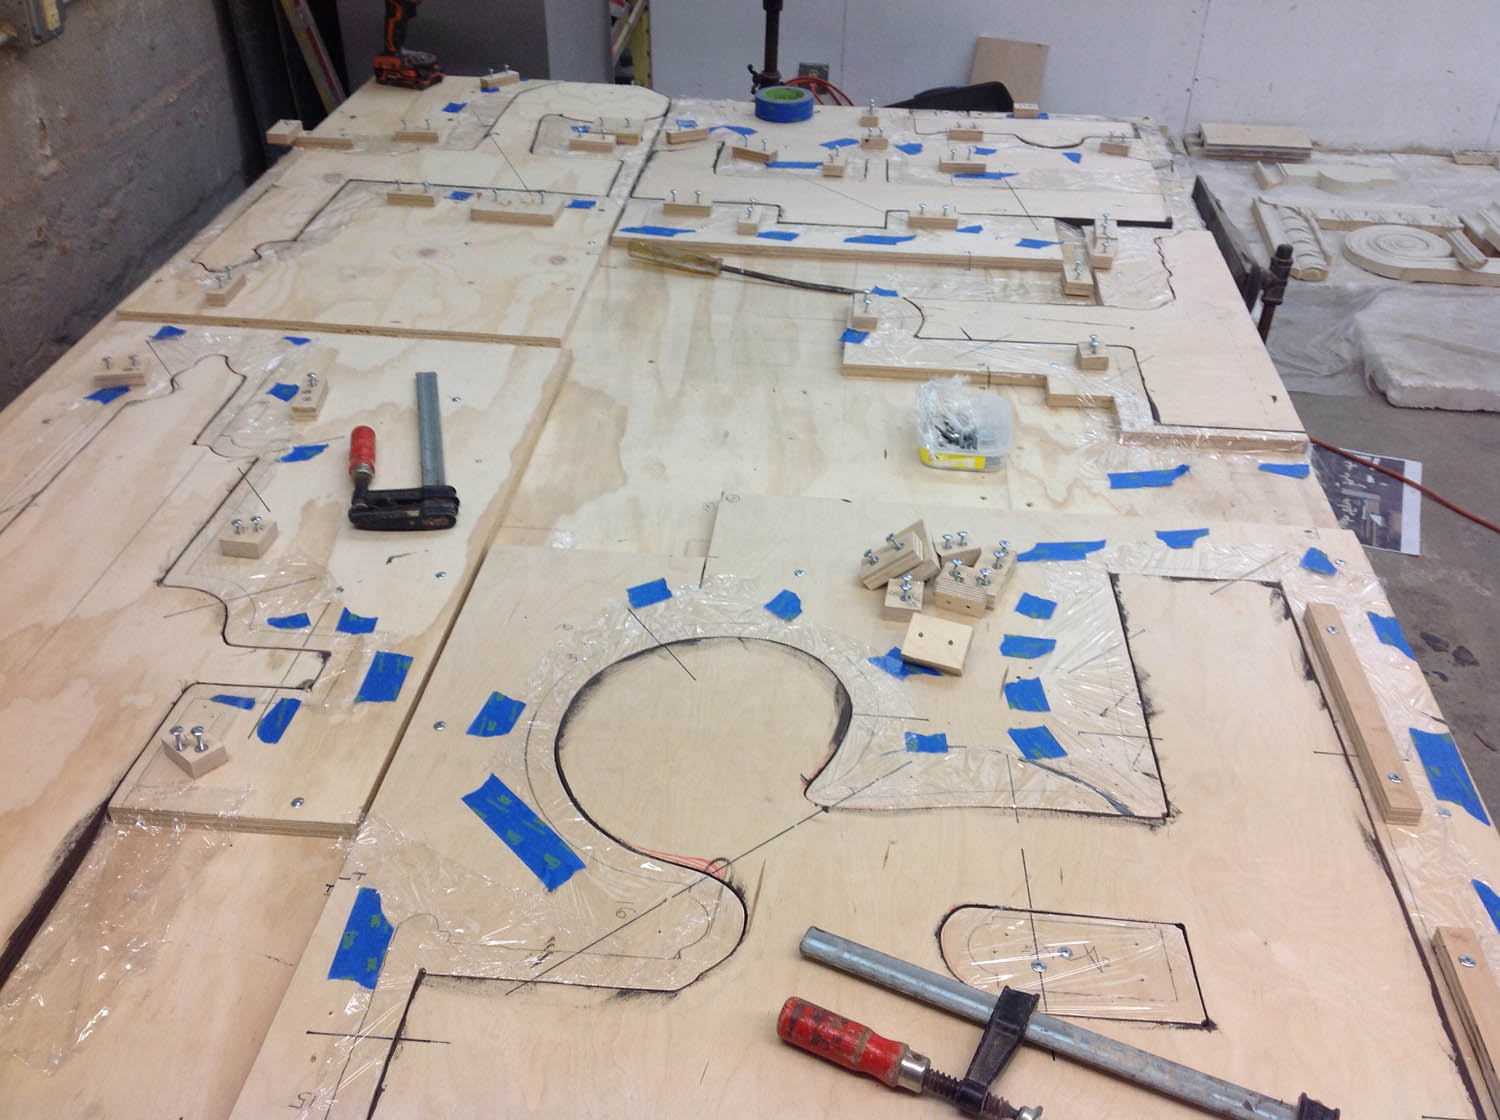 The parts needed to be glued down to a plywood backing. Each cluster was divided into sub-sections, to control for weight. A templating system was developed (consultation provided by artist Matthew Clifford) to keep all the parts aligned while glueing them down.